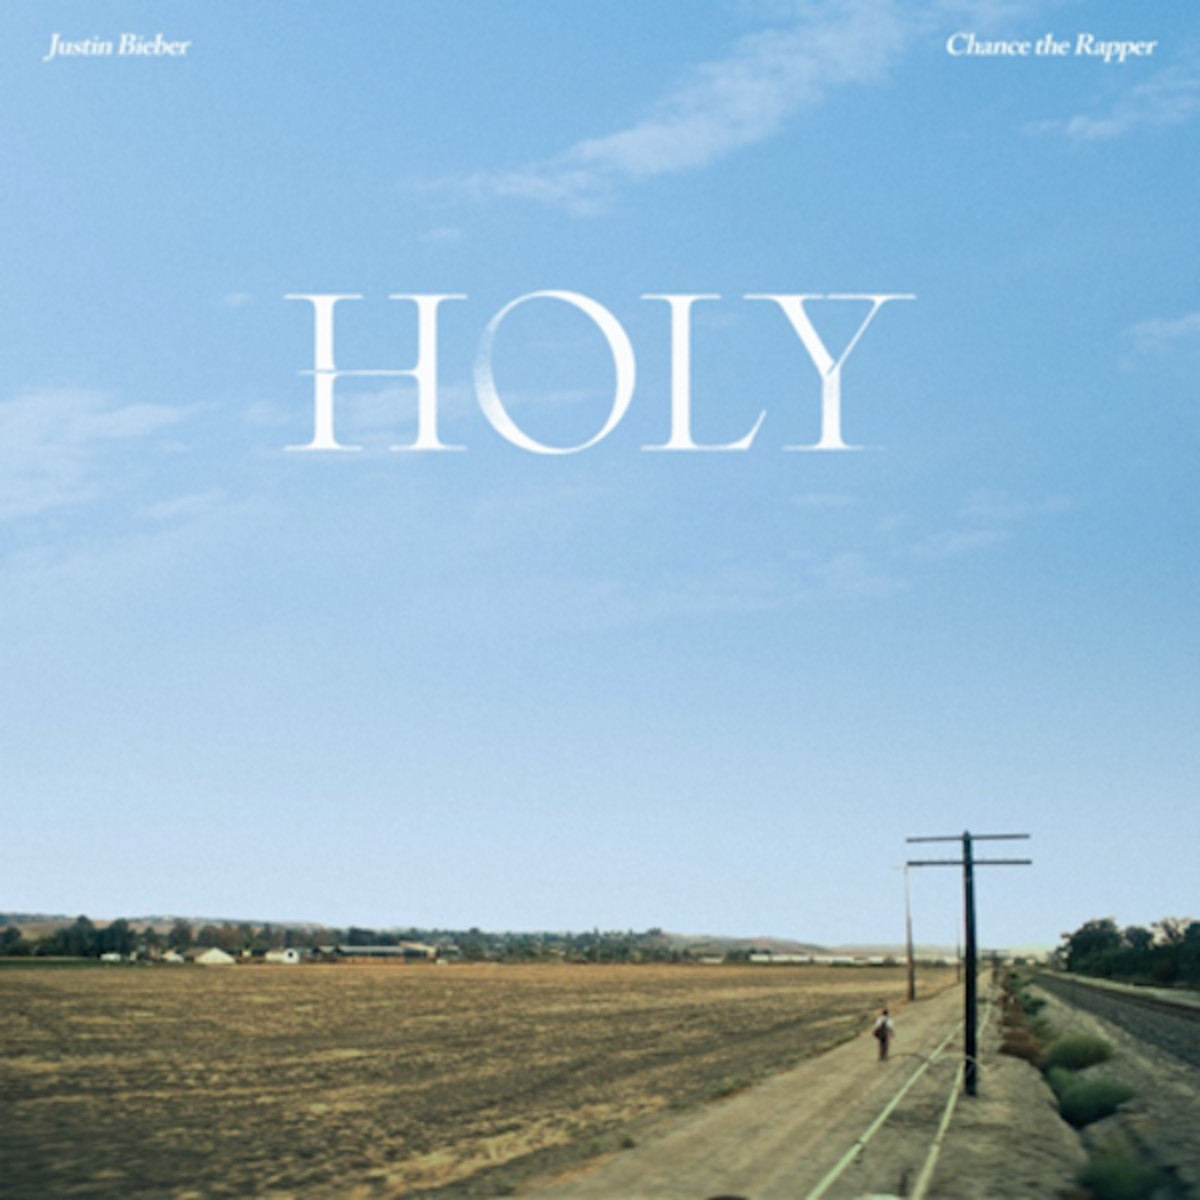 """.@justinbieber drops new single """"Holy"""" f/ @chancetherapper: https://t.co/VZHAc4bj7E https://t.co/RlWkW7FXbW"""